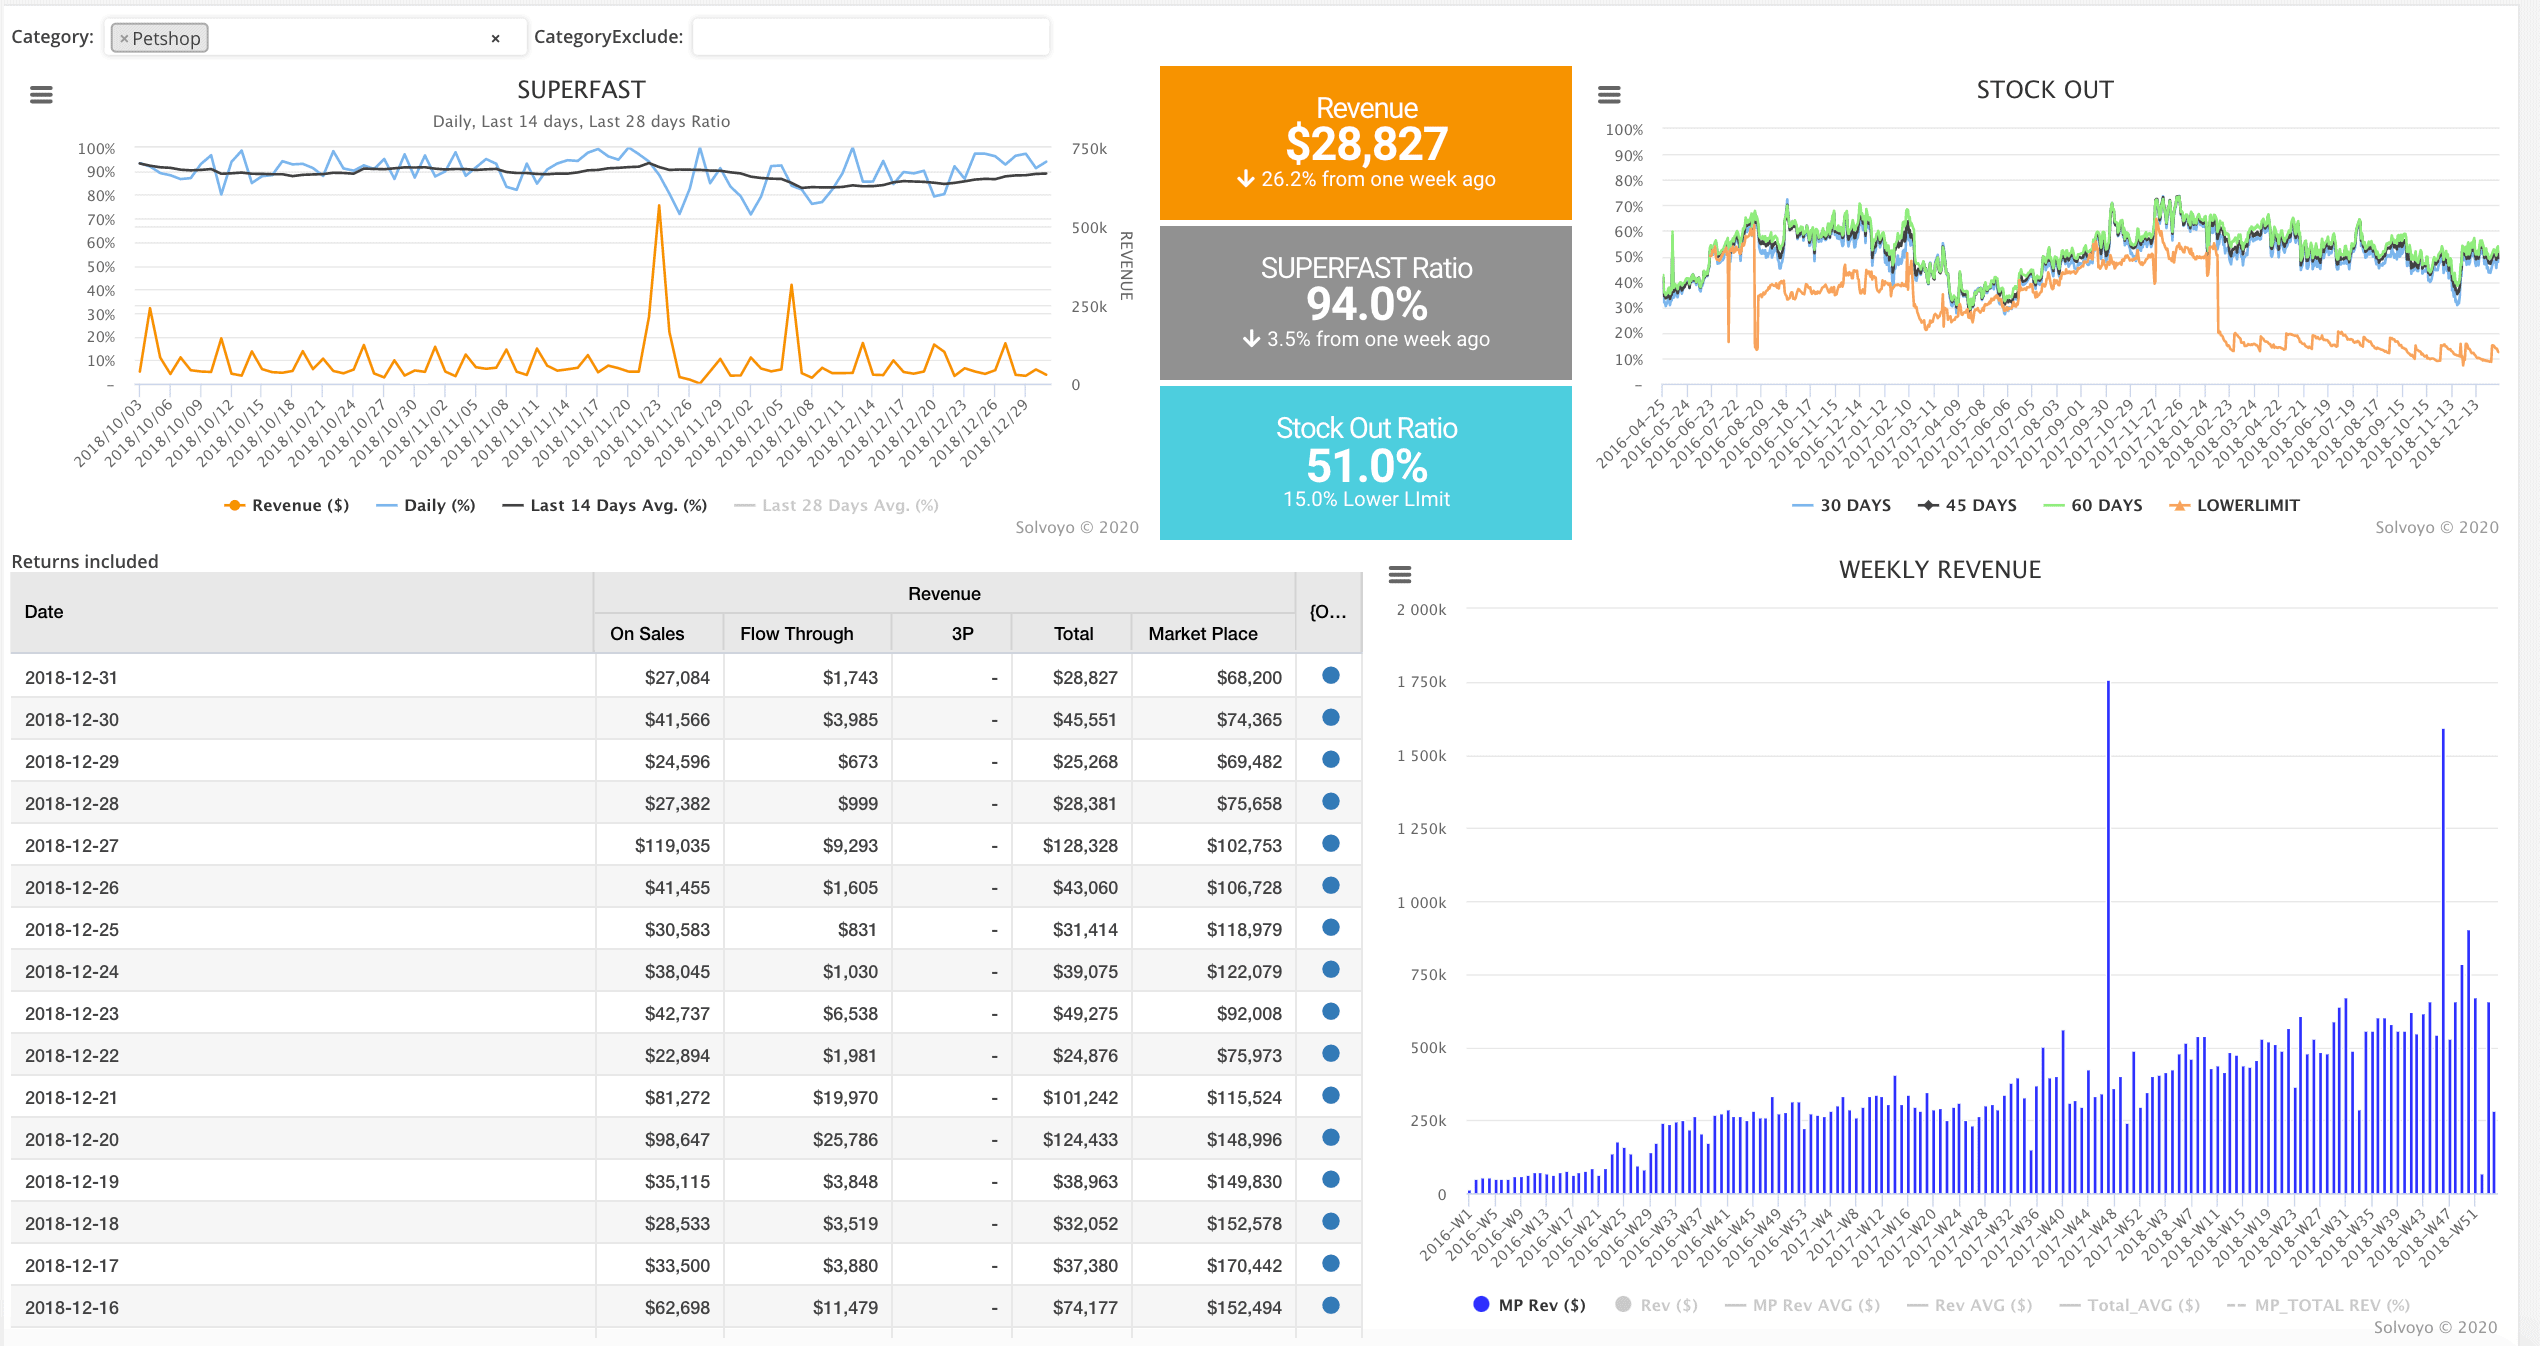 Dashboard for tracking same-day deliveries and stock-outs